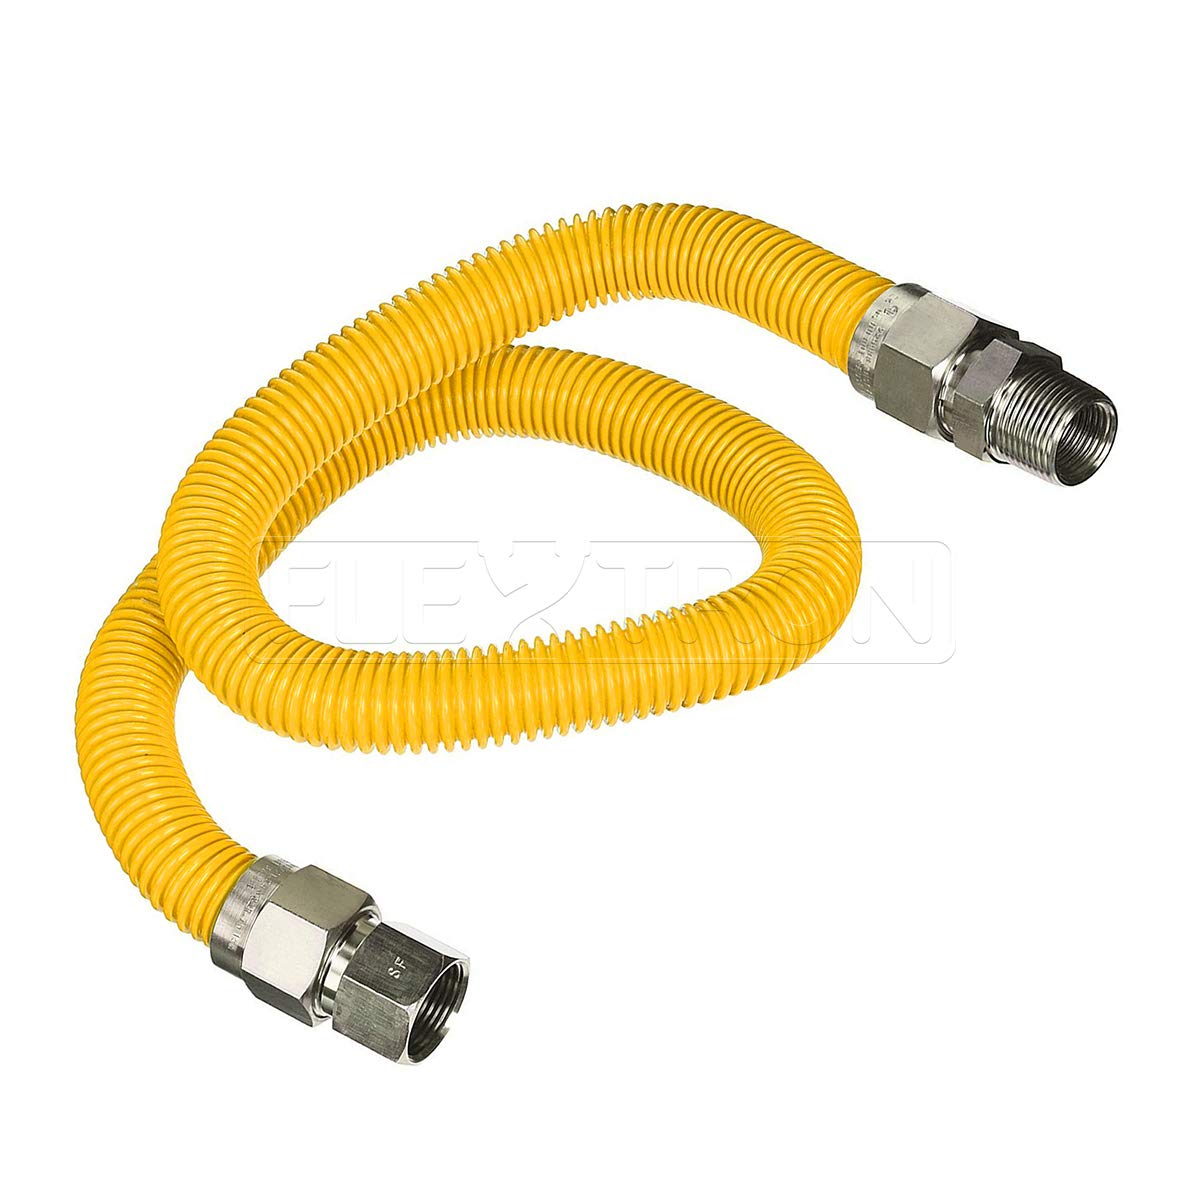 Flextron FTGC-YC34-36P 36'' Flexible Yellow Epoxy Coated Gas Line Connector with 1'' Outer Diameter and 3/4'' FIP x 3/4'' MIP Fittings, Stainless Steel by Flextron